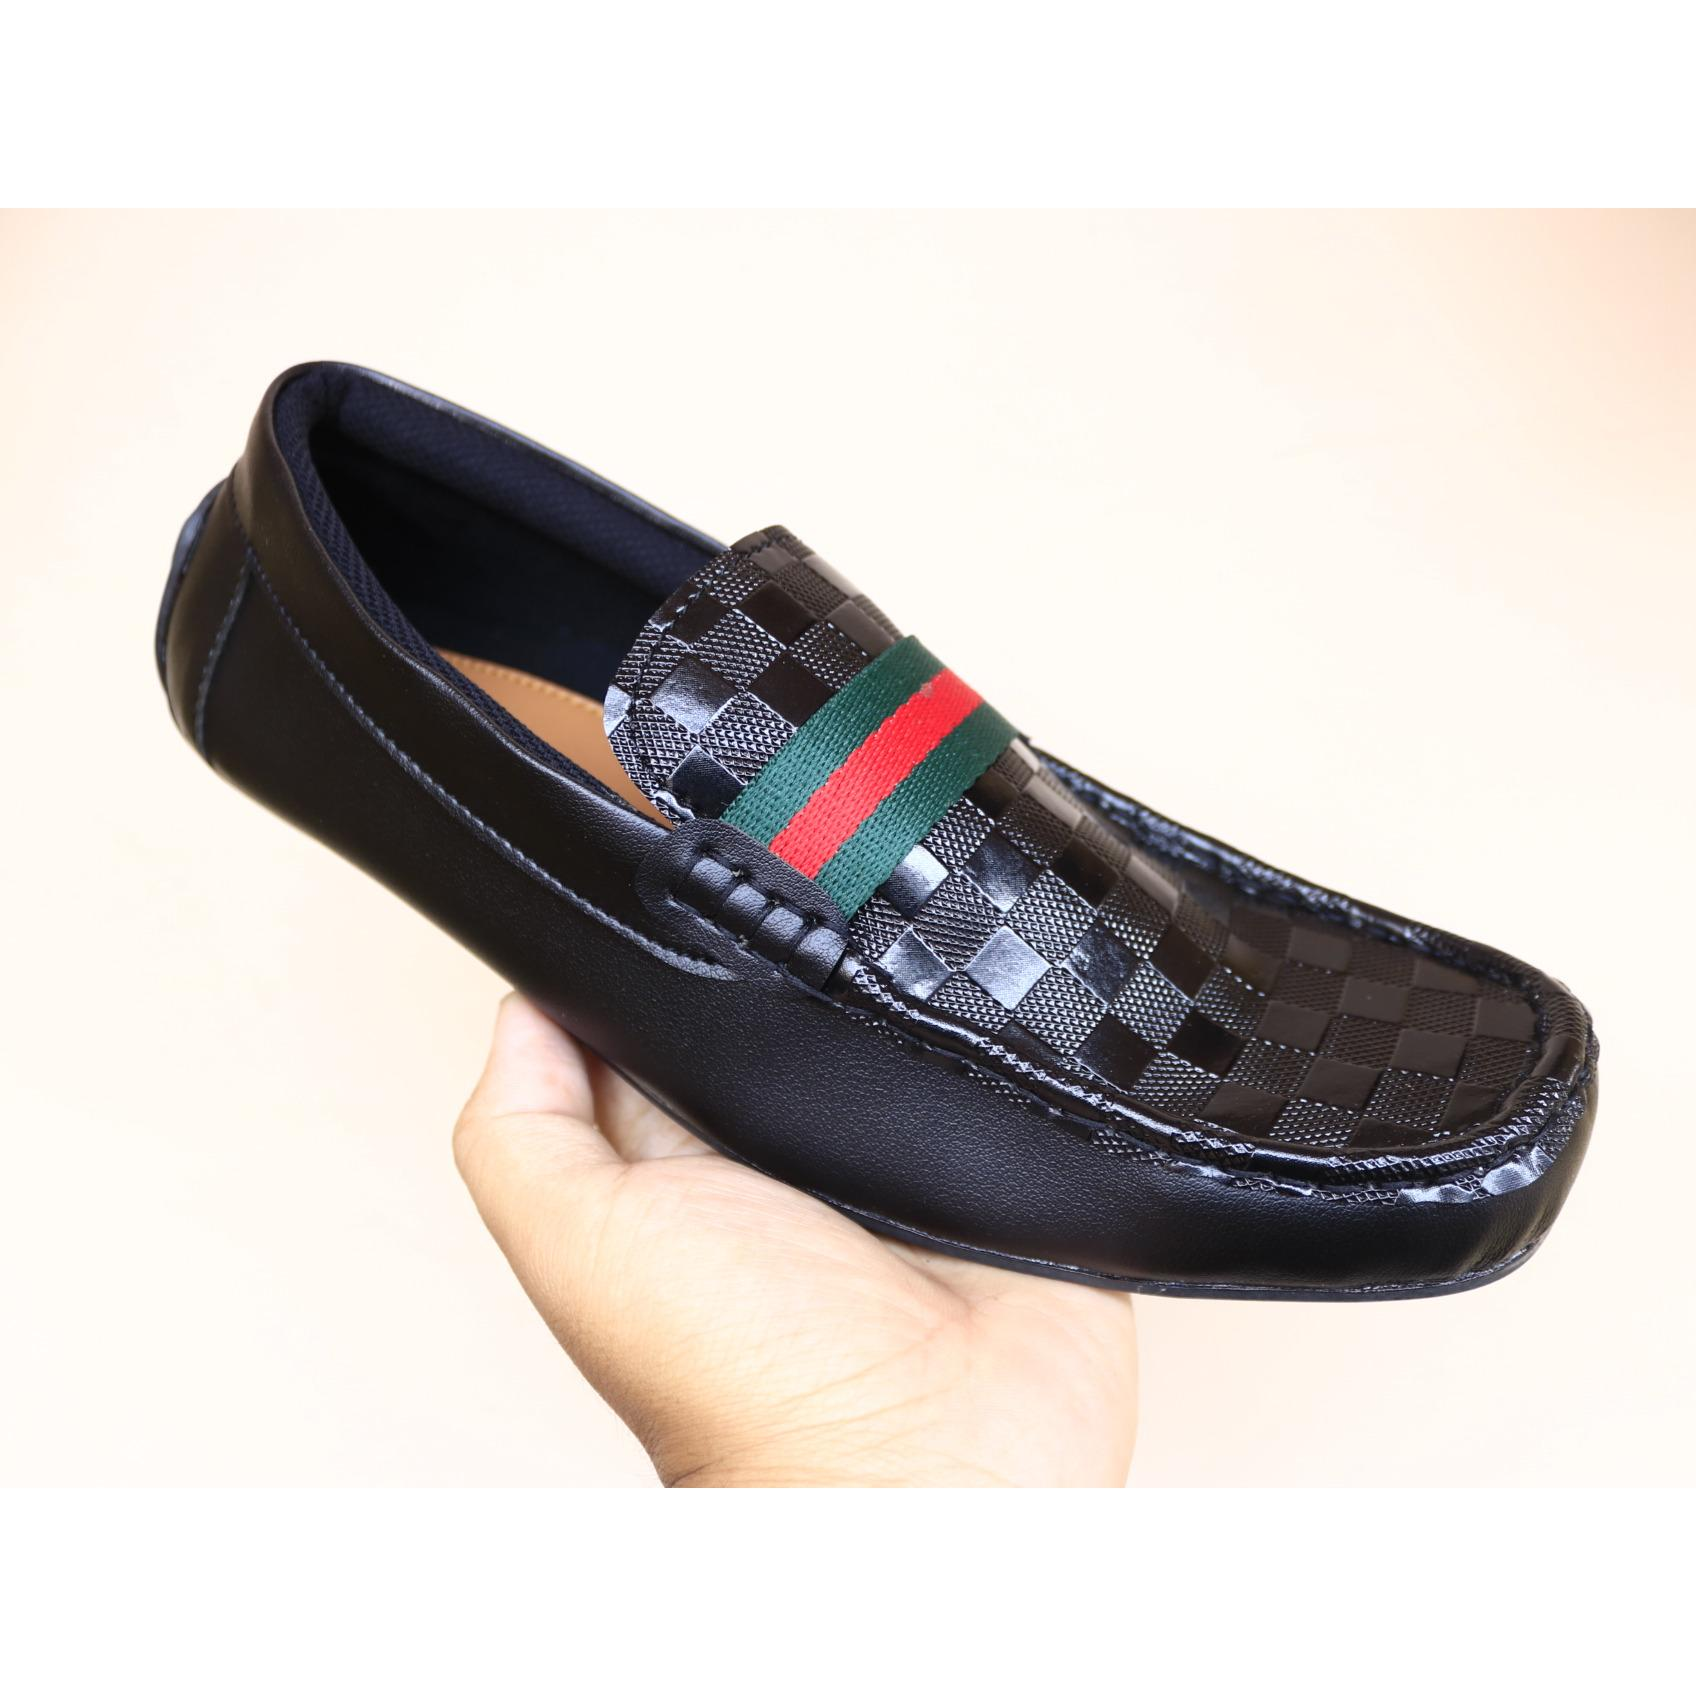 sepatu casual gucci pria casual formal mocasin slip on flat shoes slop pria kickers loafers adidas (Lokal)